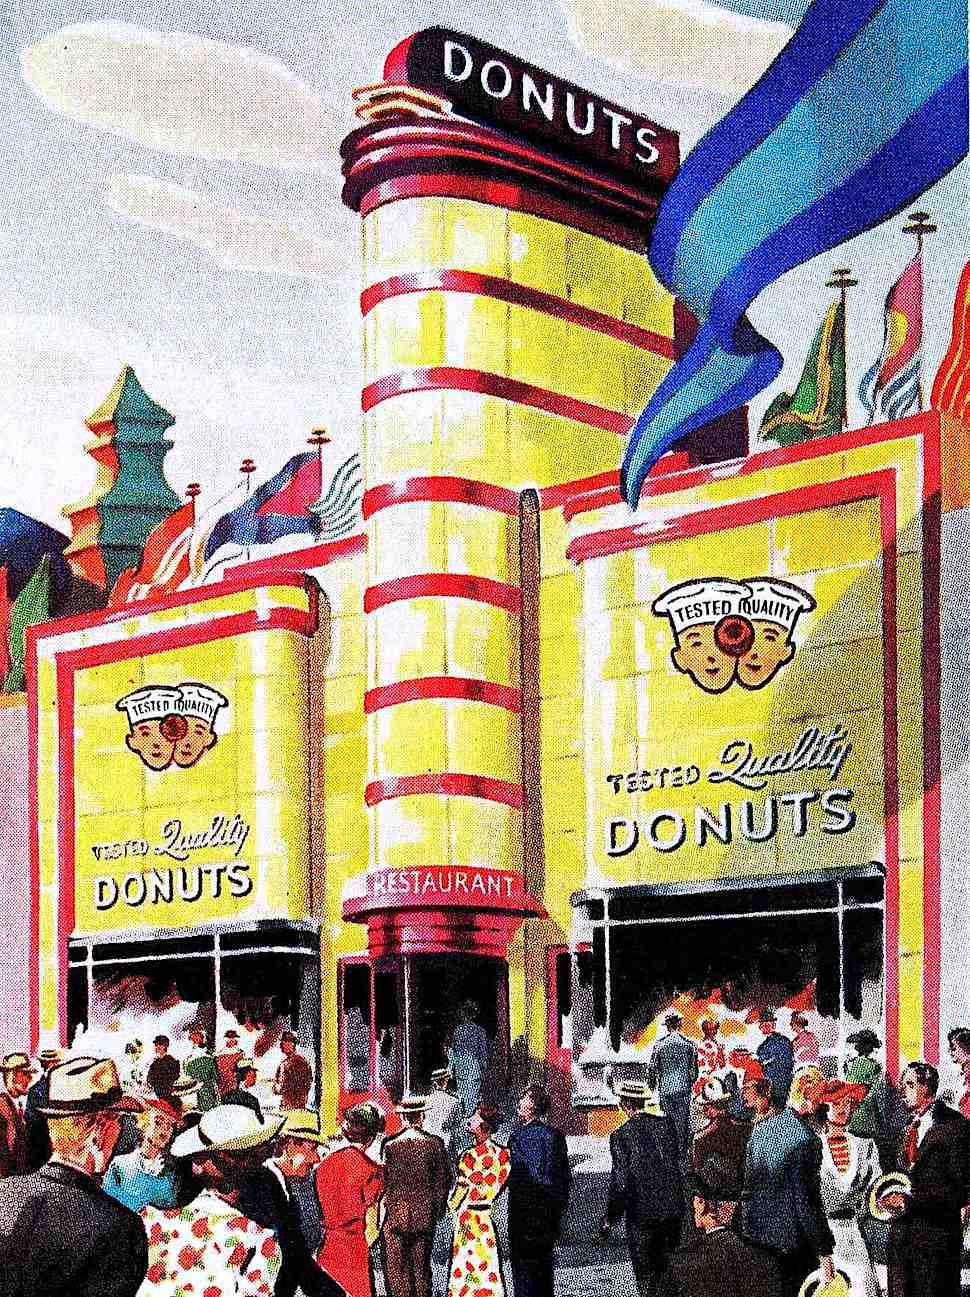 fun donuts for everyone at the 1939 San Francisco World's Fair, a color illustration